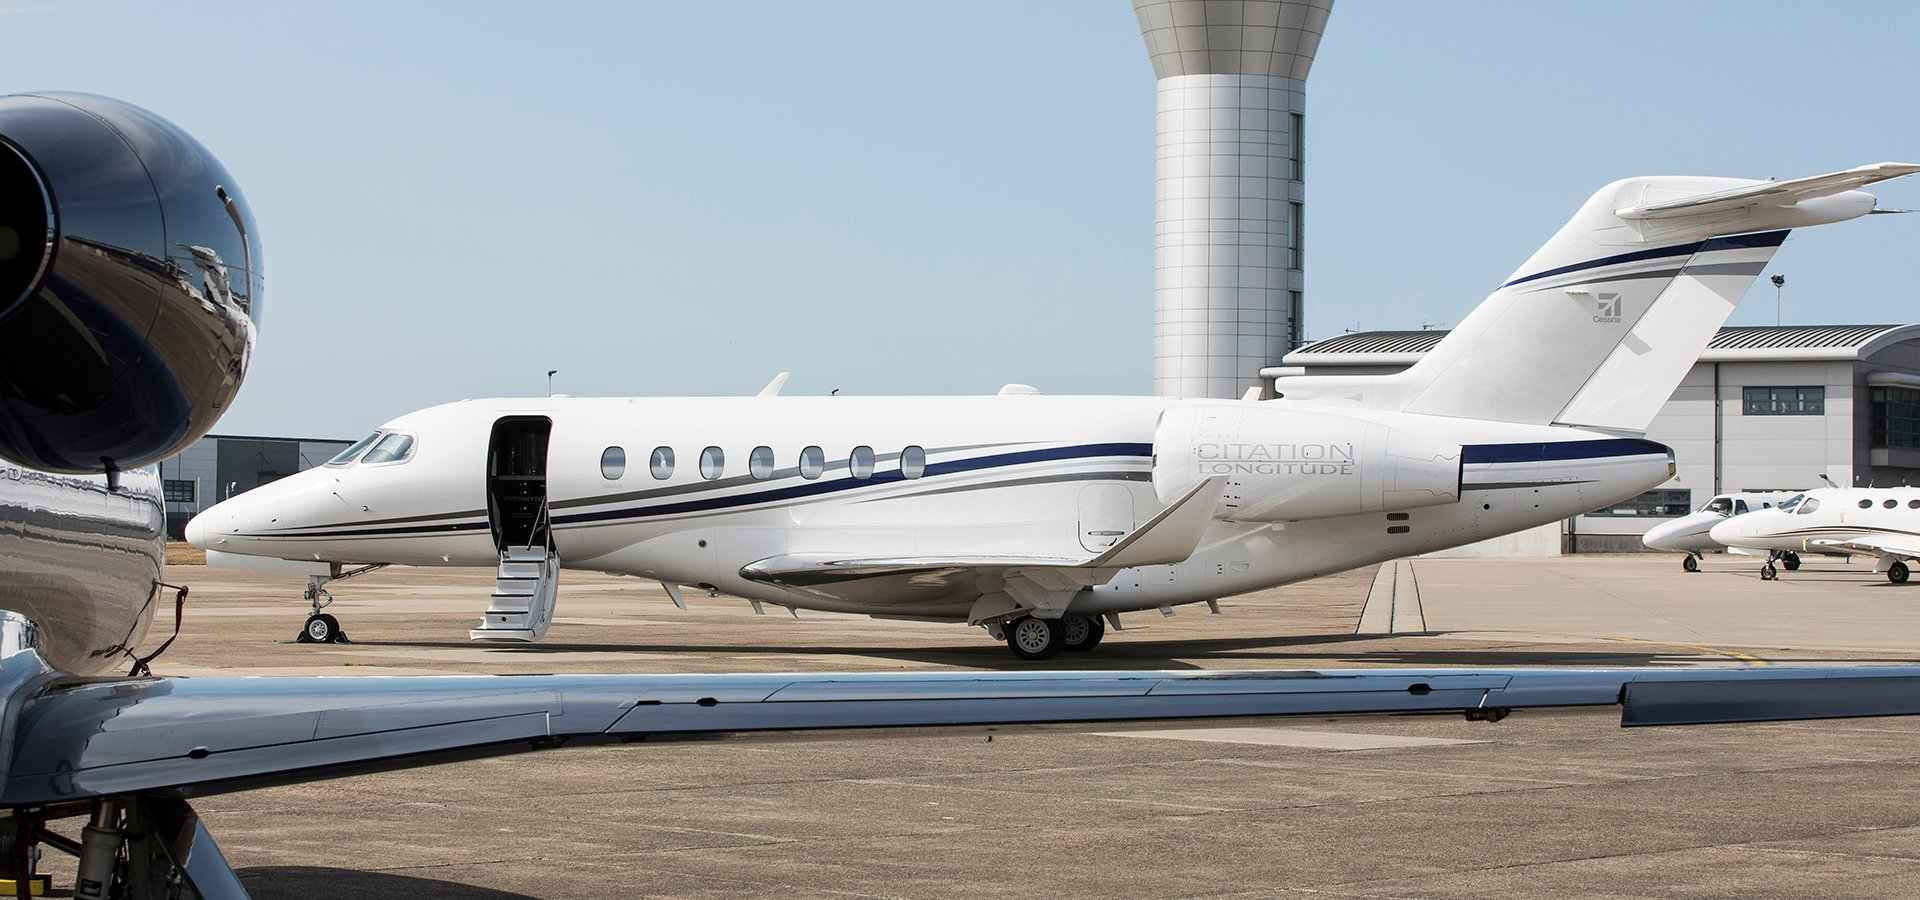 Cessna Citation series